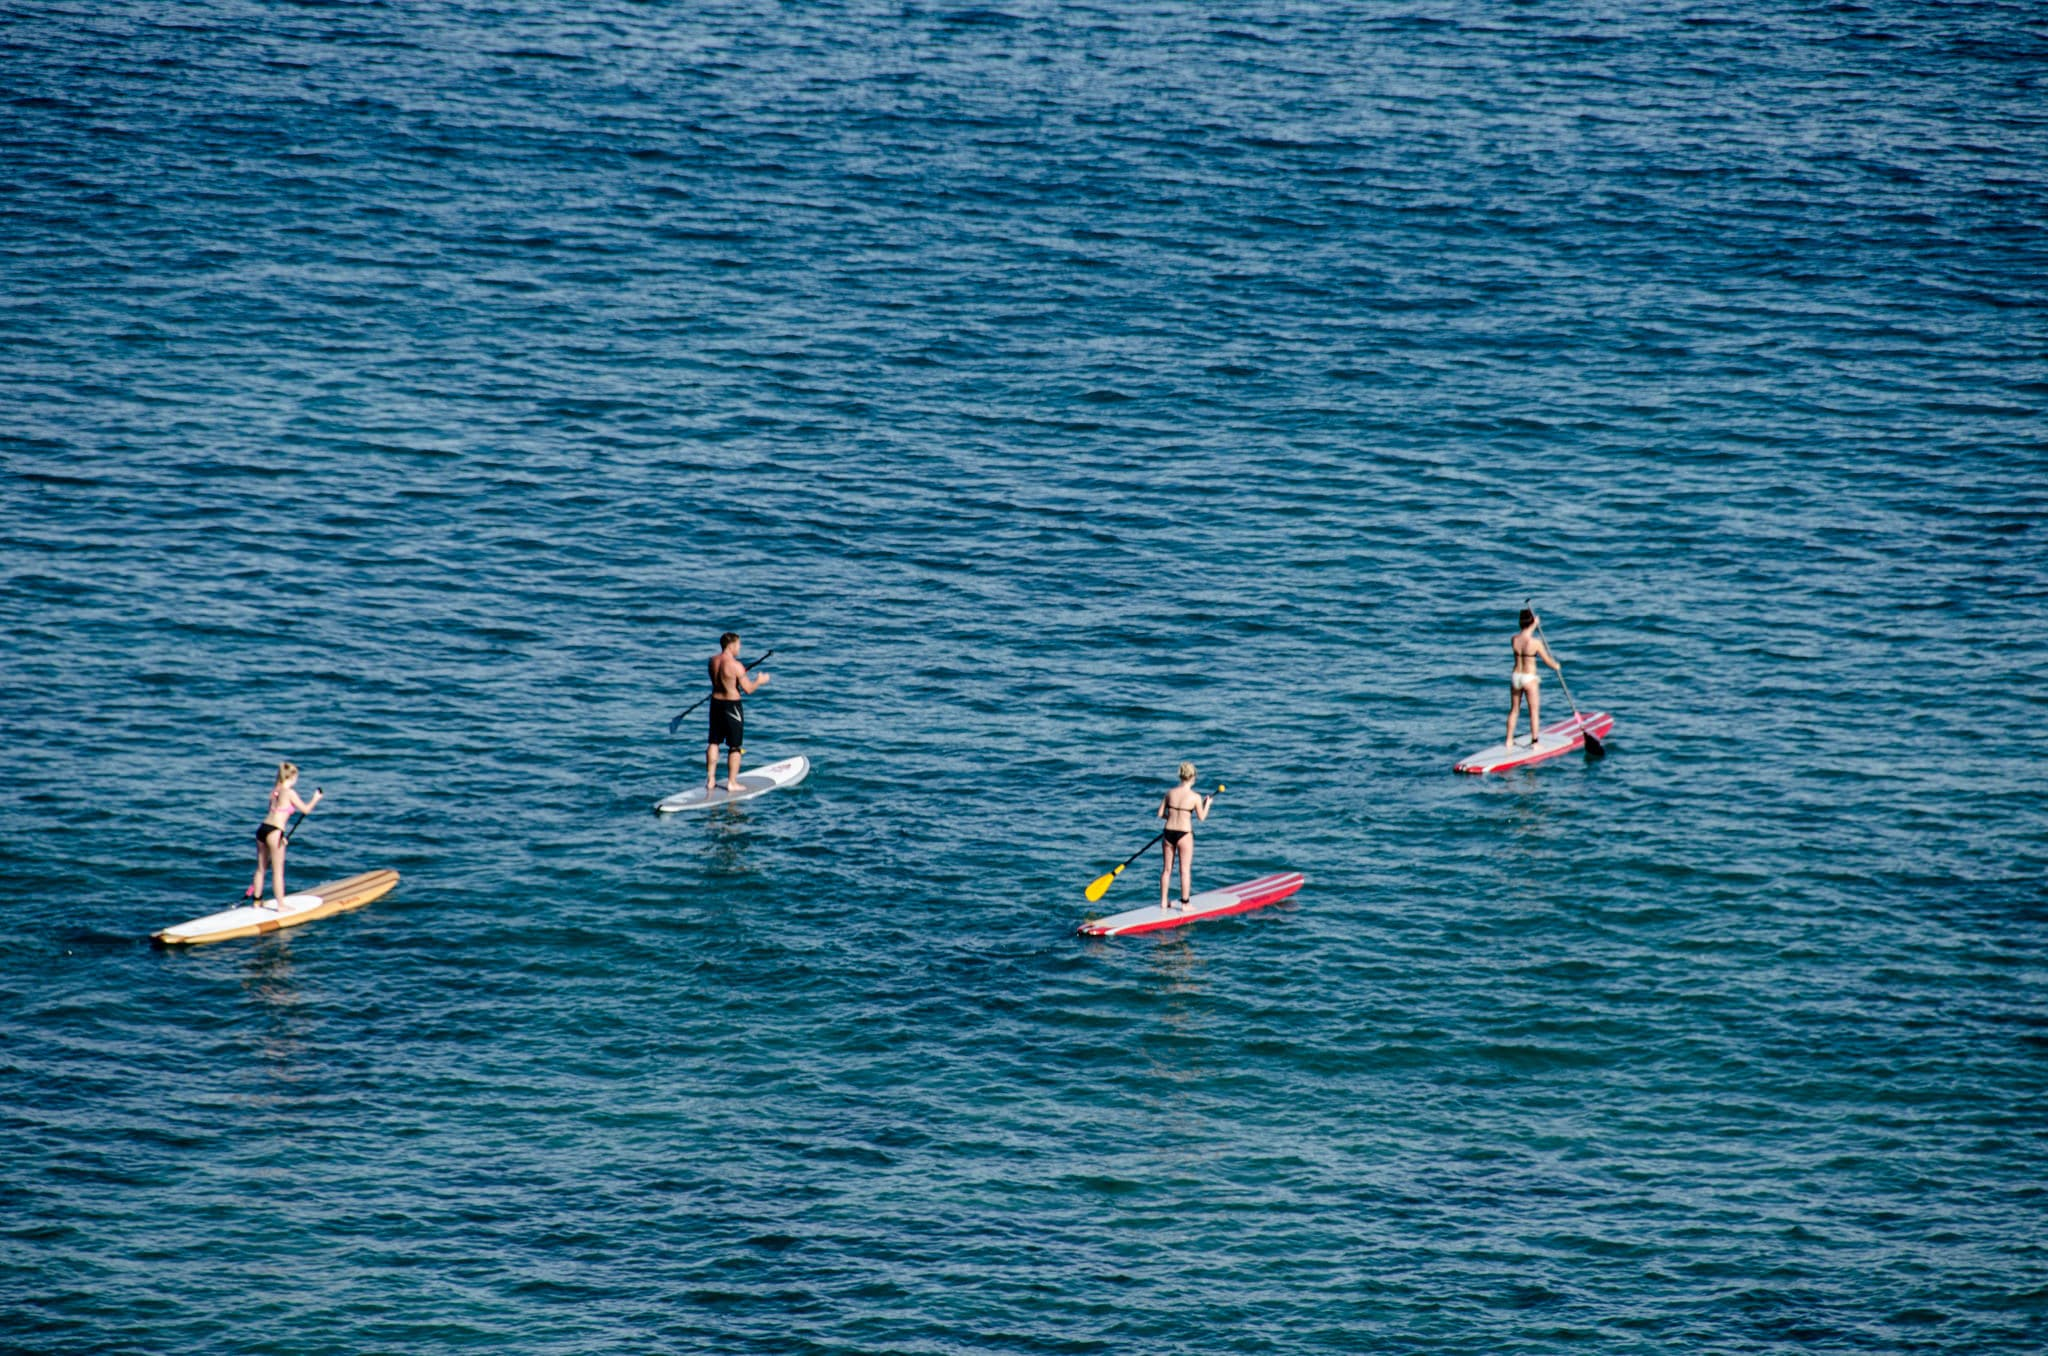 Go stand-up paddle boarding in Kaanapali Maui.